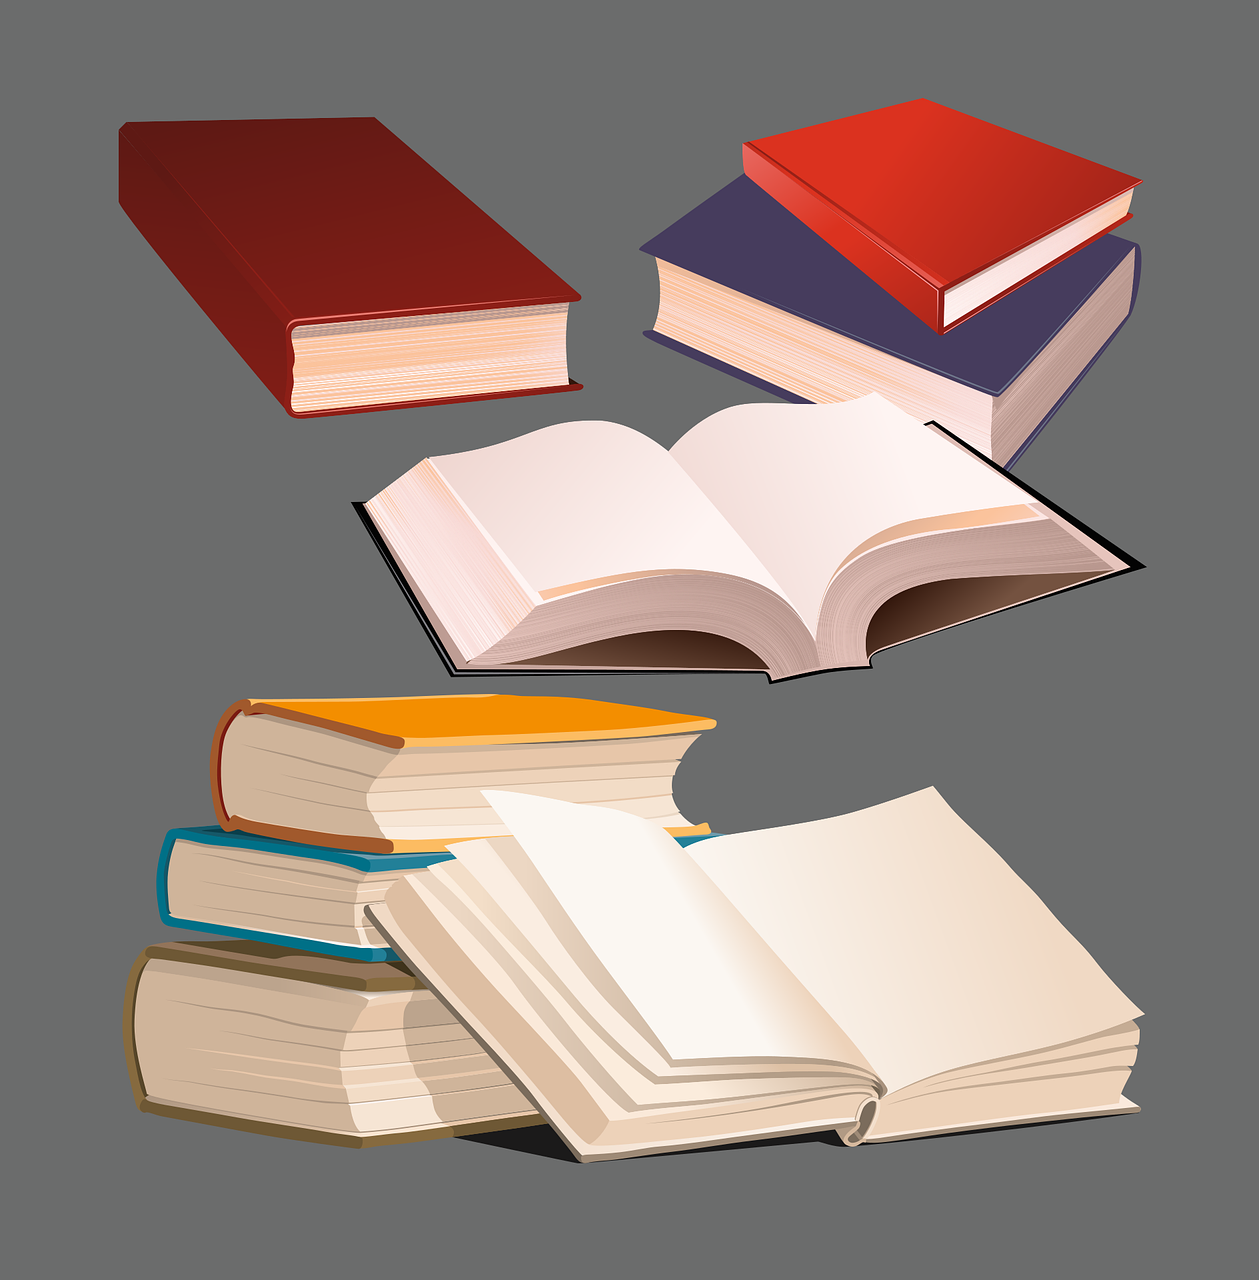 books-4927853_1280.png